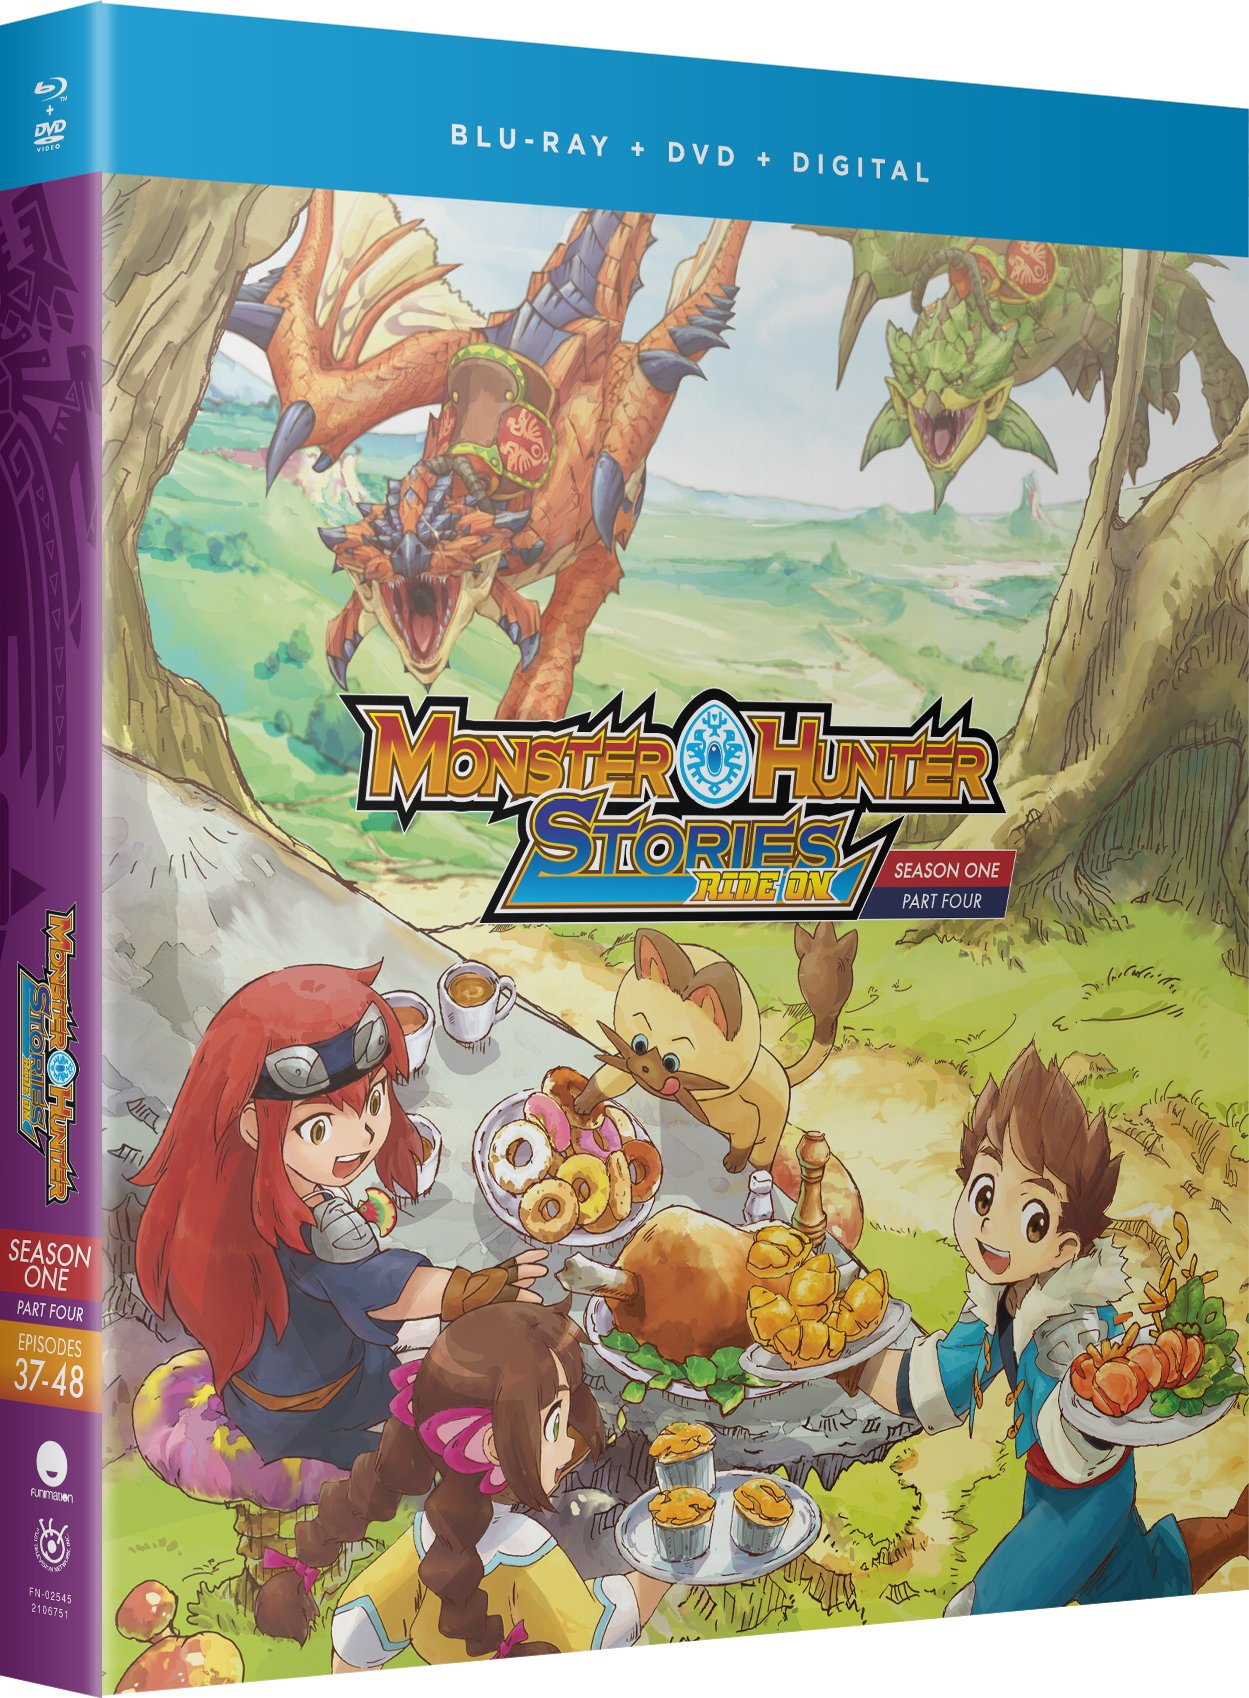 Blu-ray : Monster Hunter Stories Ride On: Season One Part Four (With DVD, Boxed Set, Standard Edition, Uncut, Subtitled)